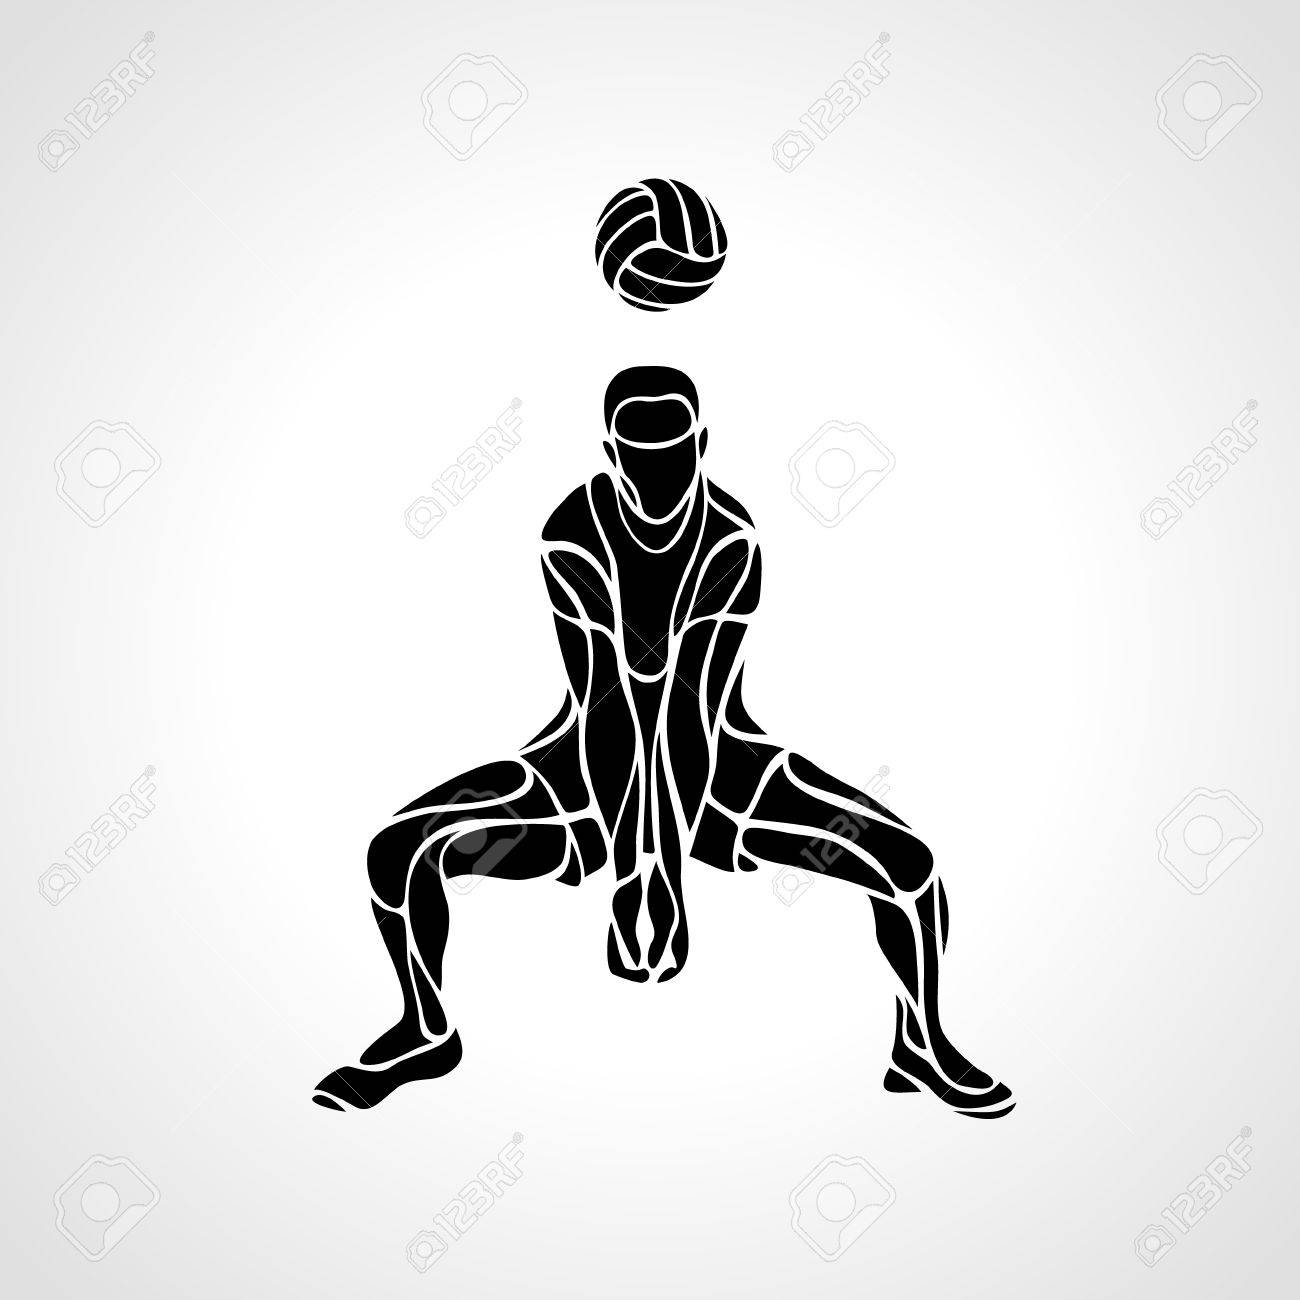 Volleyball Player Receiving Feed Silhouette Of A Abstract Volleyball Royalty Free Cliparts Vectors And Stock Illustration Image 63906703